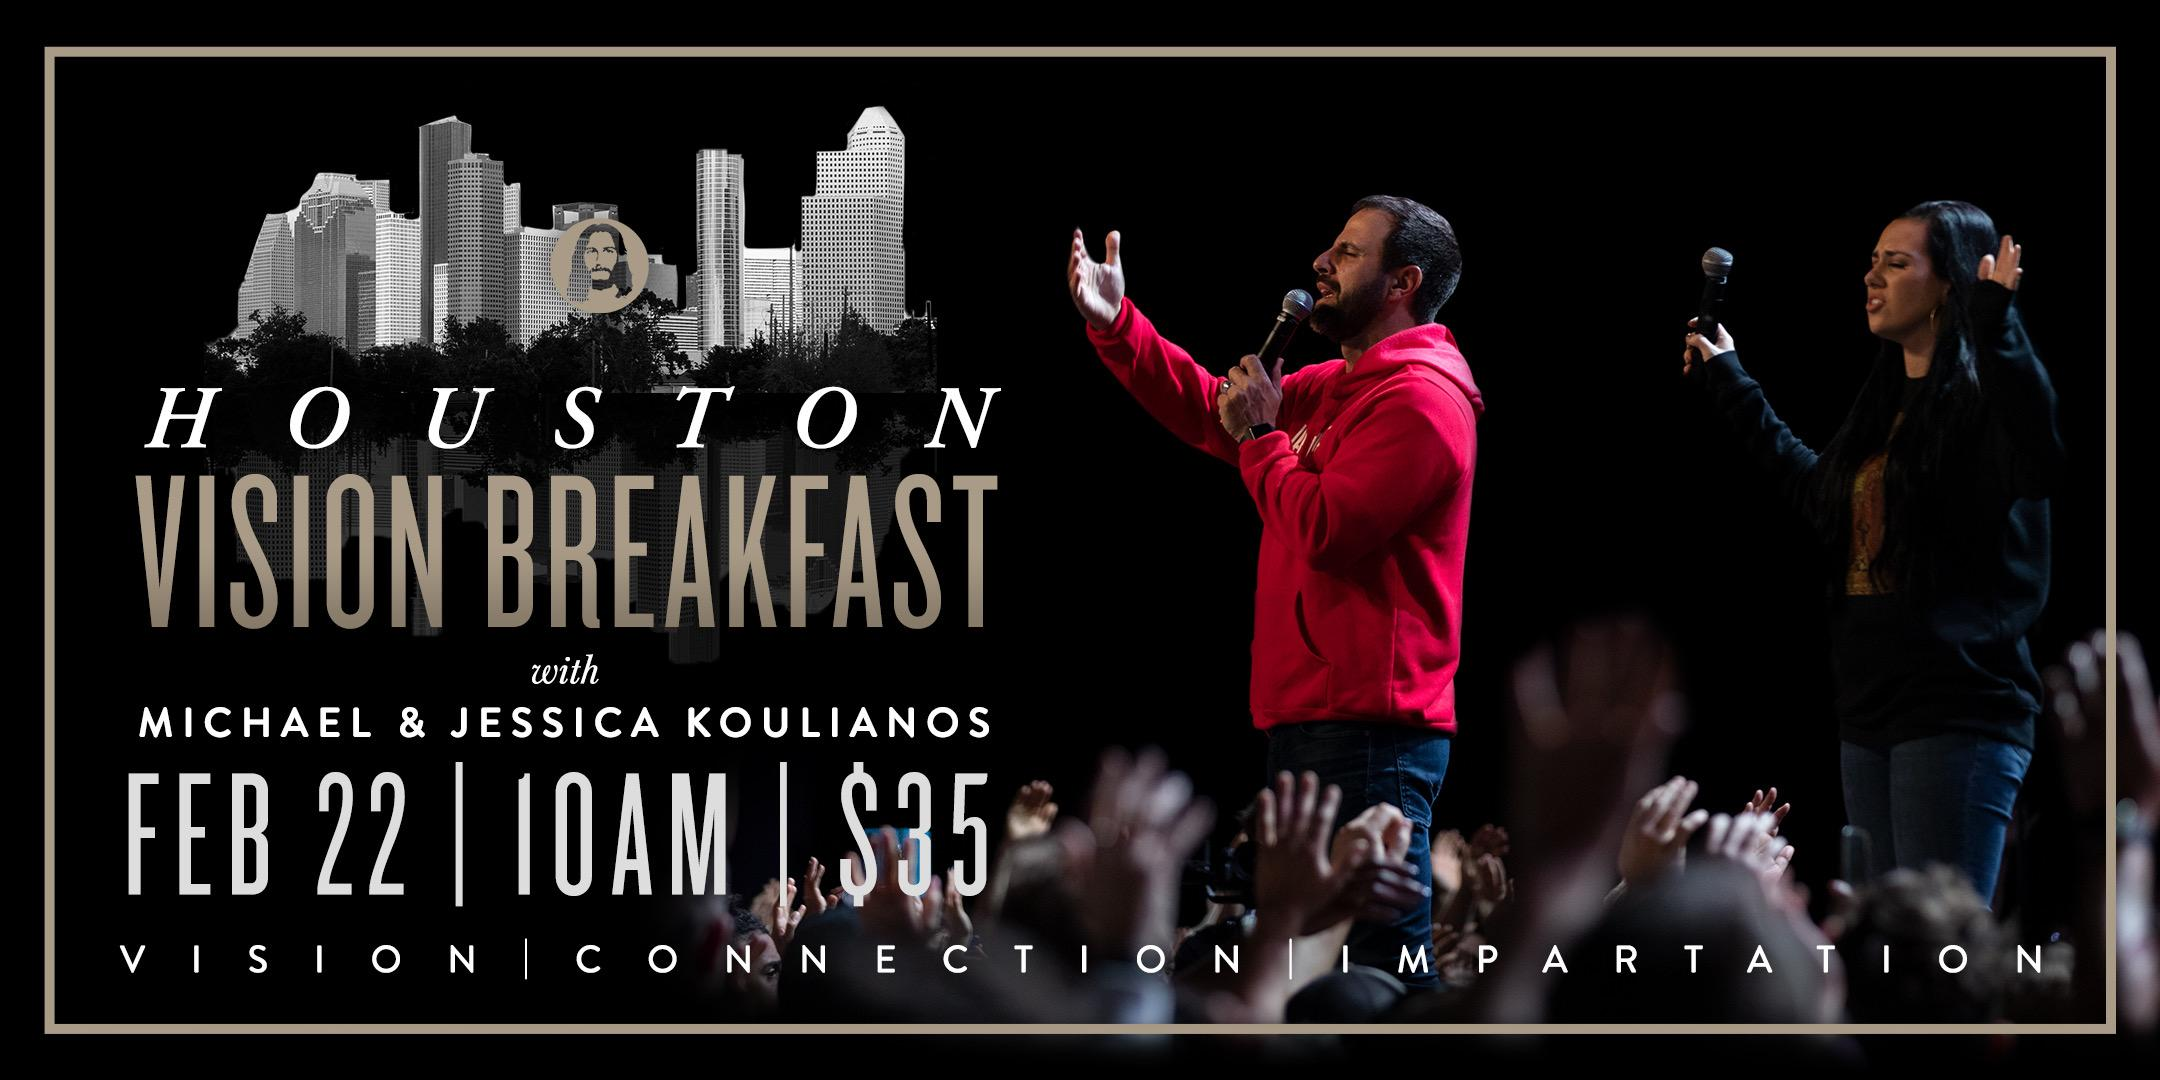 Jesus Image Houston Vision Breakfast 2020